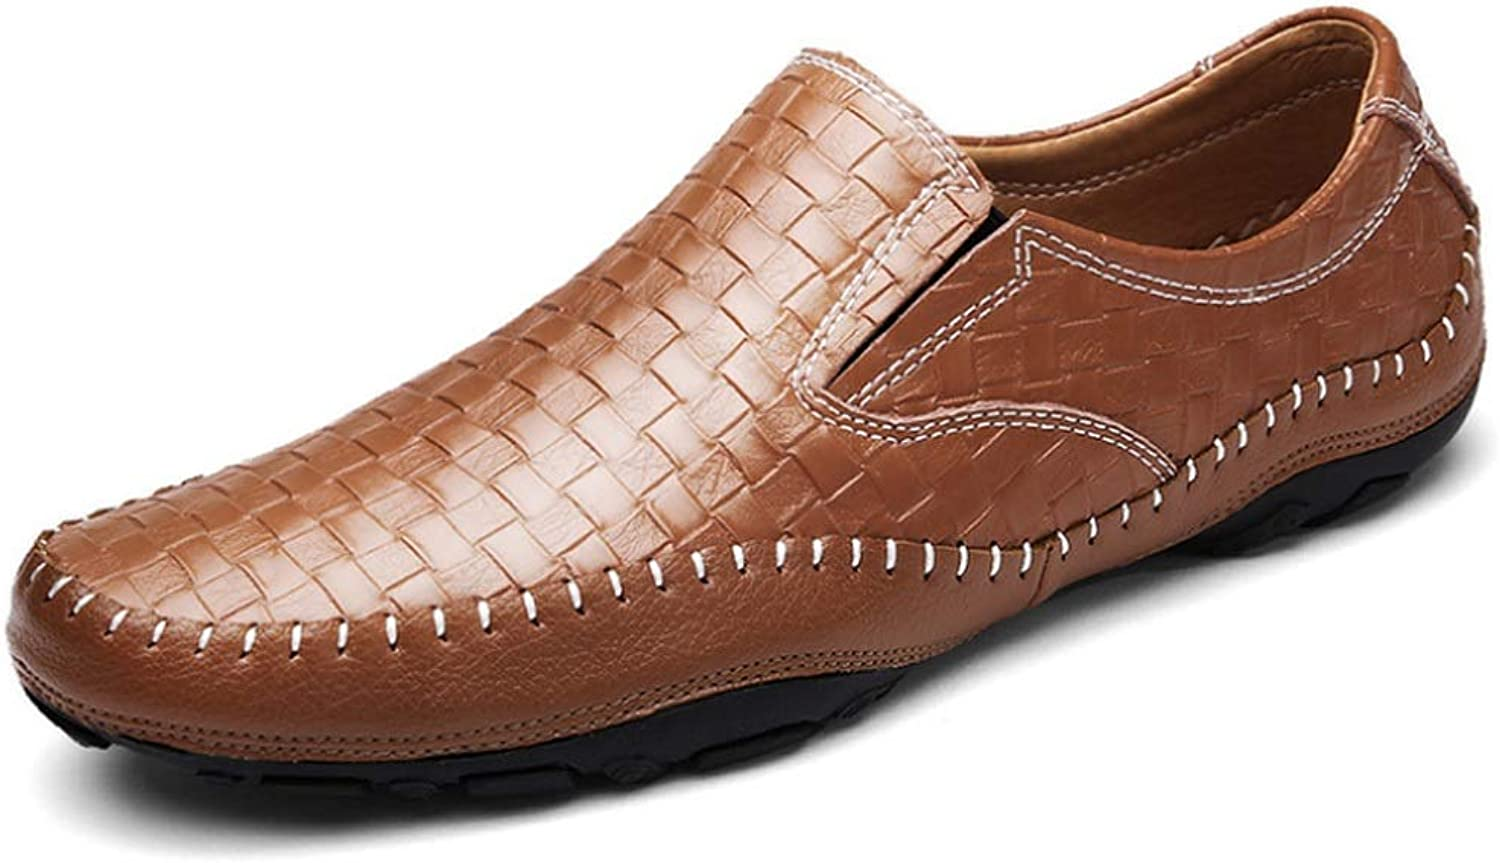 WWJDXZ Men's Weave Leather shoes Breathable Driving shoes Loafer Flats Casual Slip On Moccasins Boat shoes Moccasin-Gommino Casual